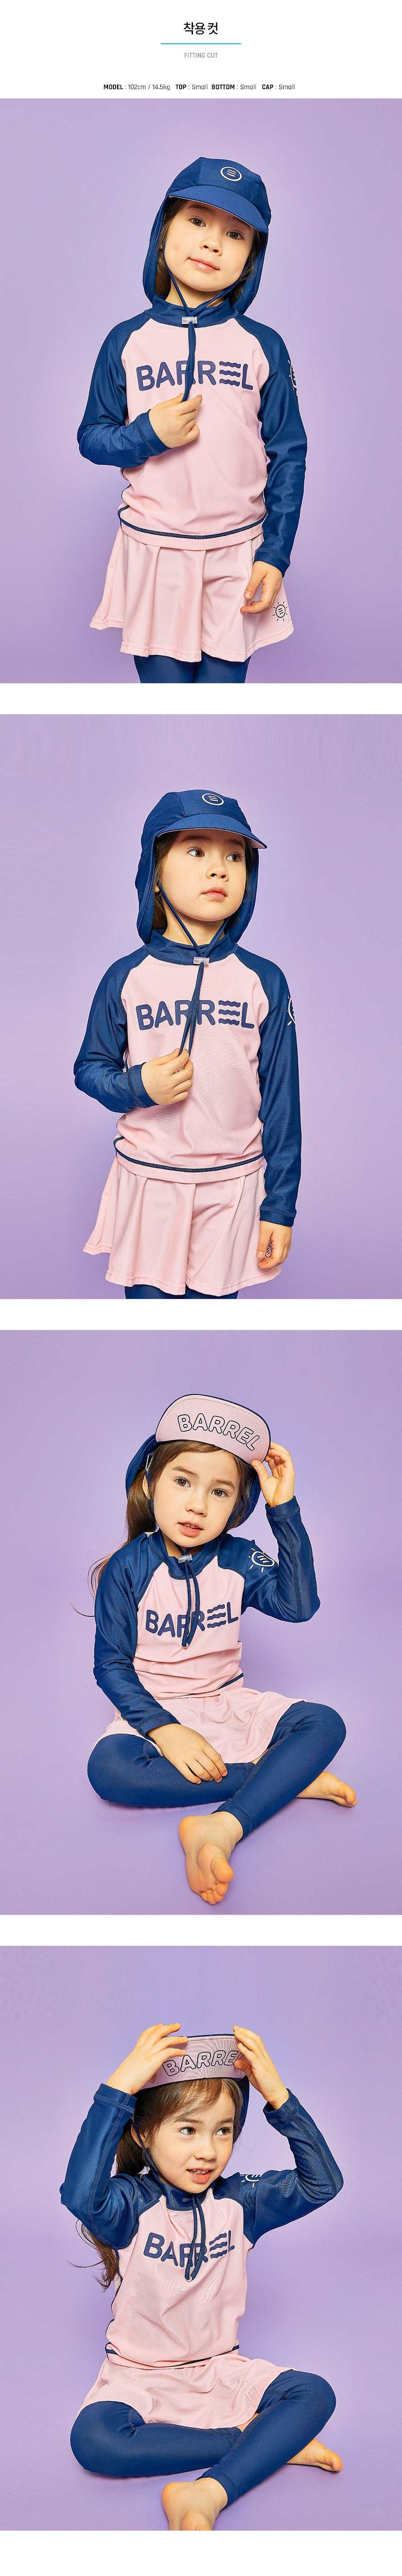 Barrel Kids Aqua Cap V3-NAVY/BRIGHT PINK